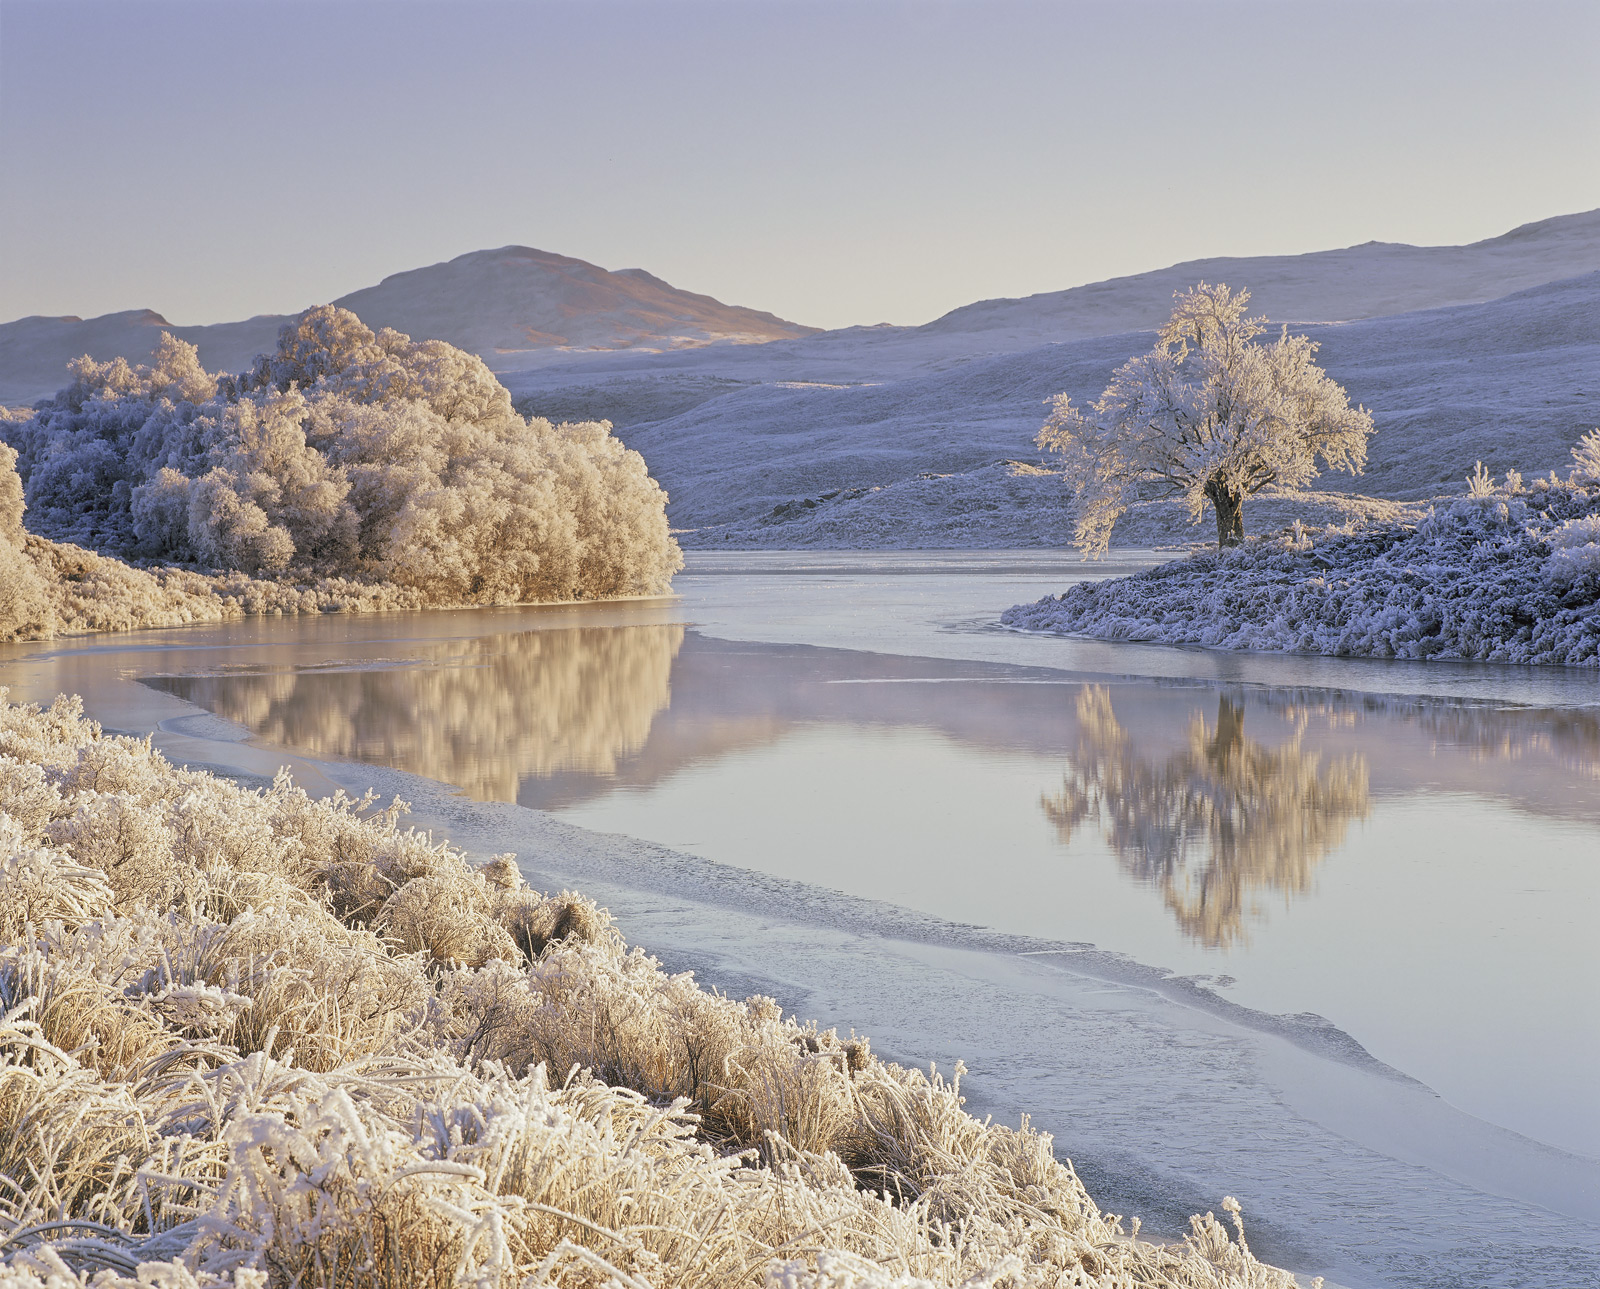 An unbelievably cold winter morning at Loch Achanalt with temperatures plummetting to minus 23 degrees celcius. Every tree...